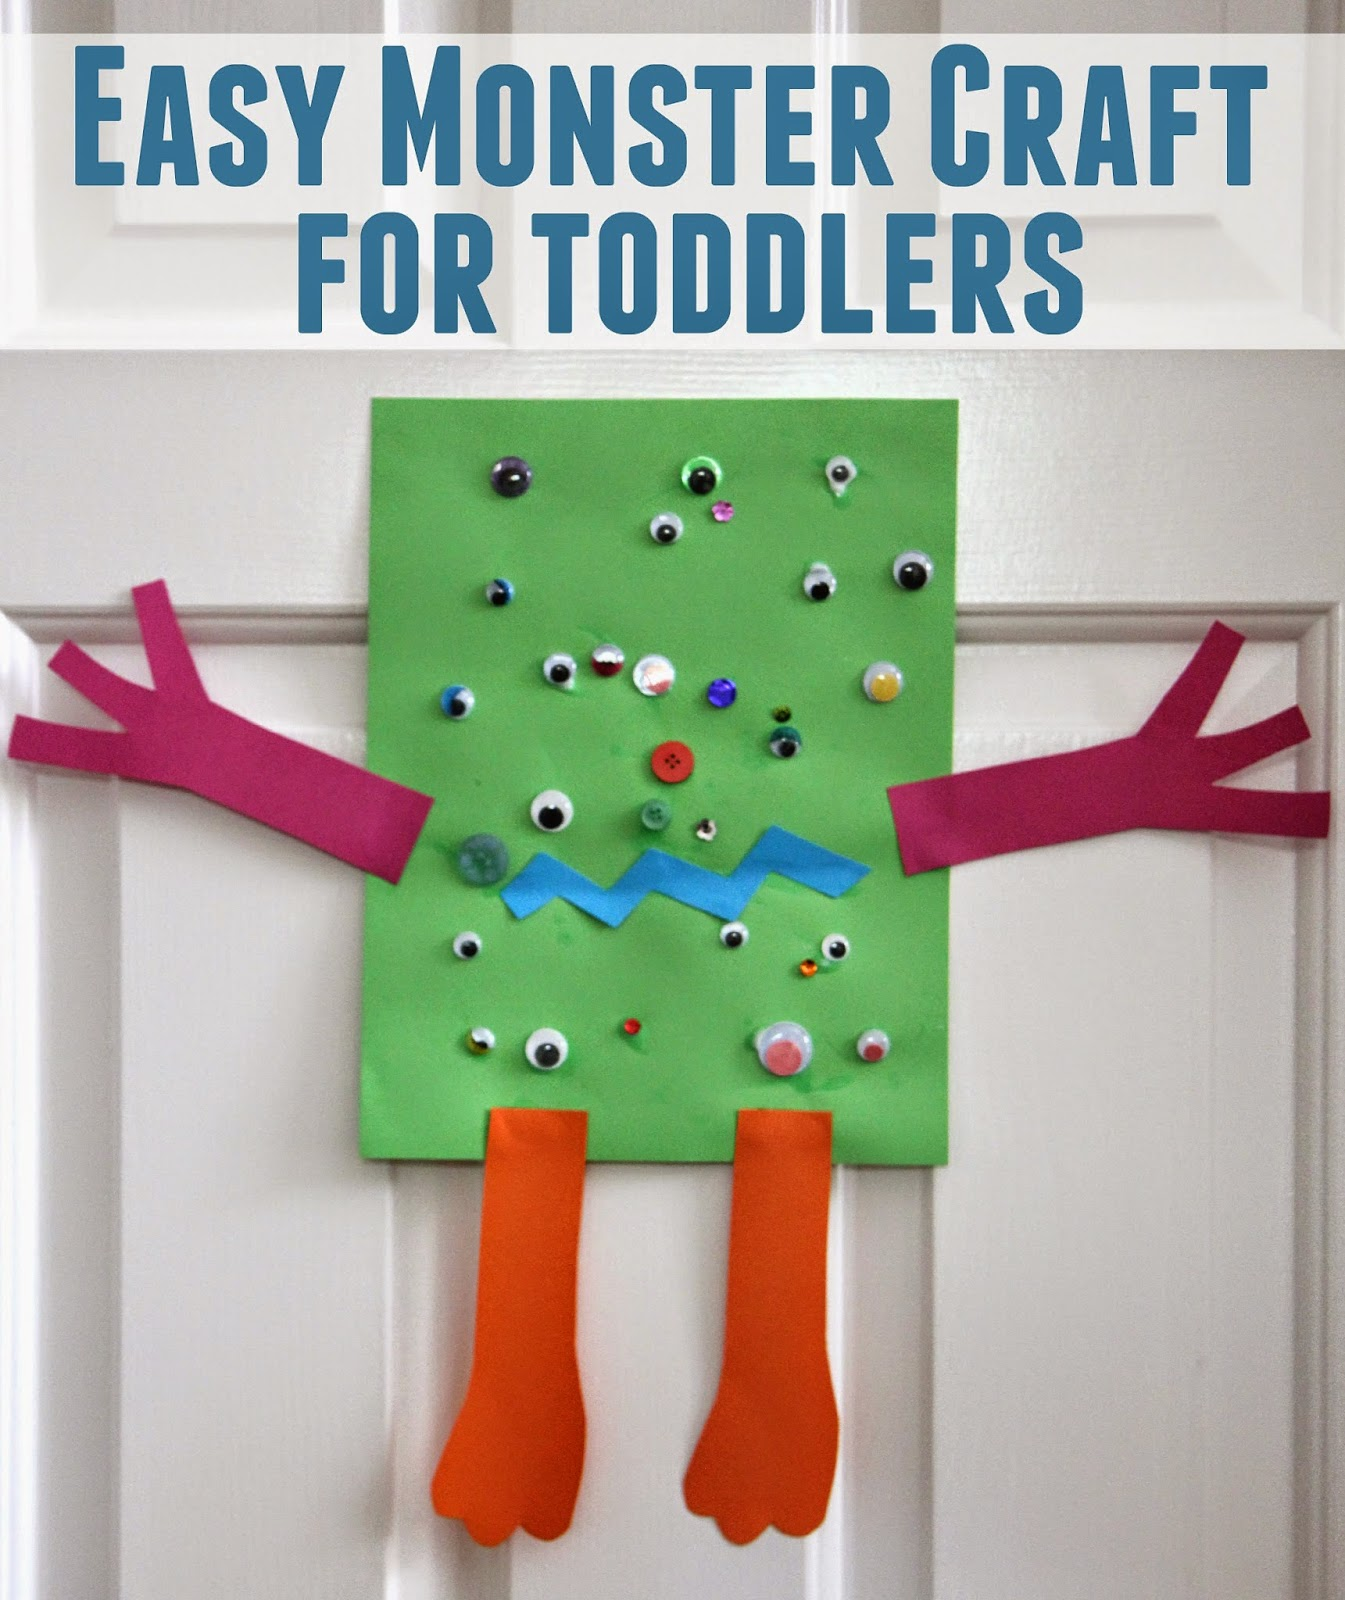 Easy Monster Craft For Toddlers Toddler Approved Bloglovin